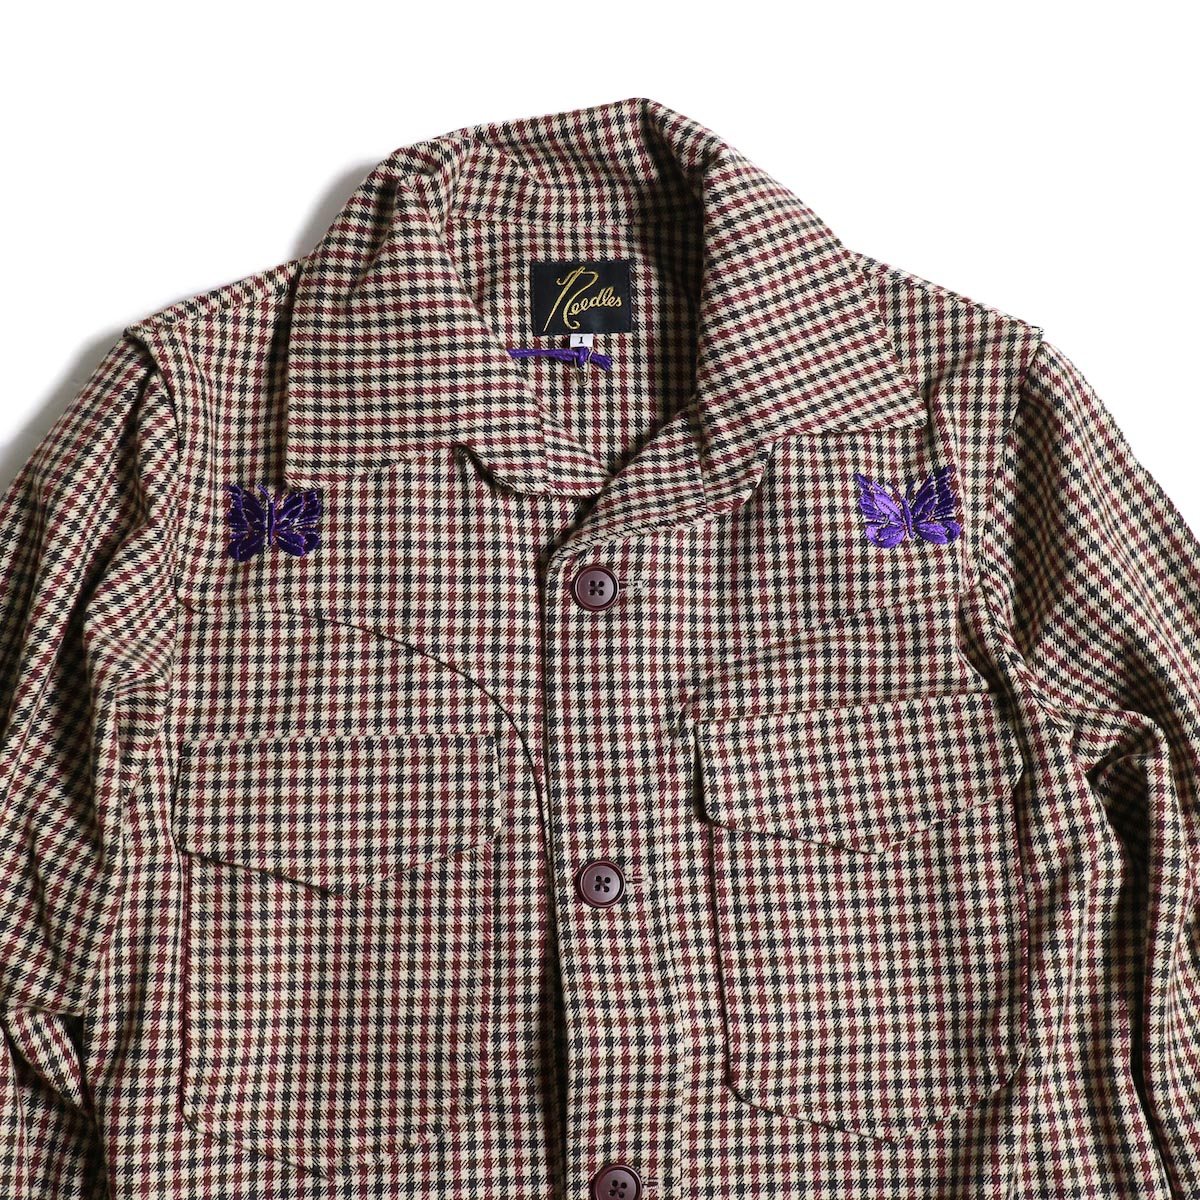 Needles / Cowboy Leisure Jacket -Gunclub Plaid (Bordeaux)パピヨン、ポケット